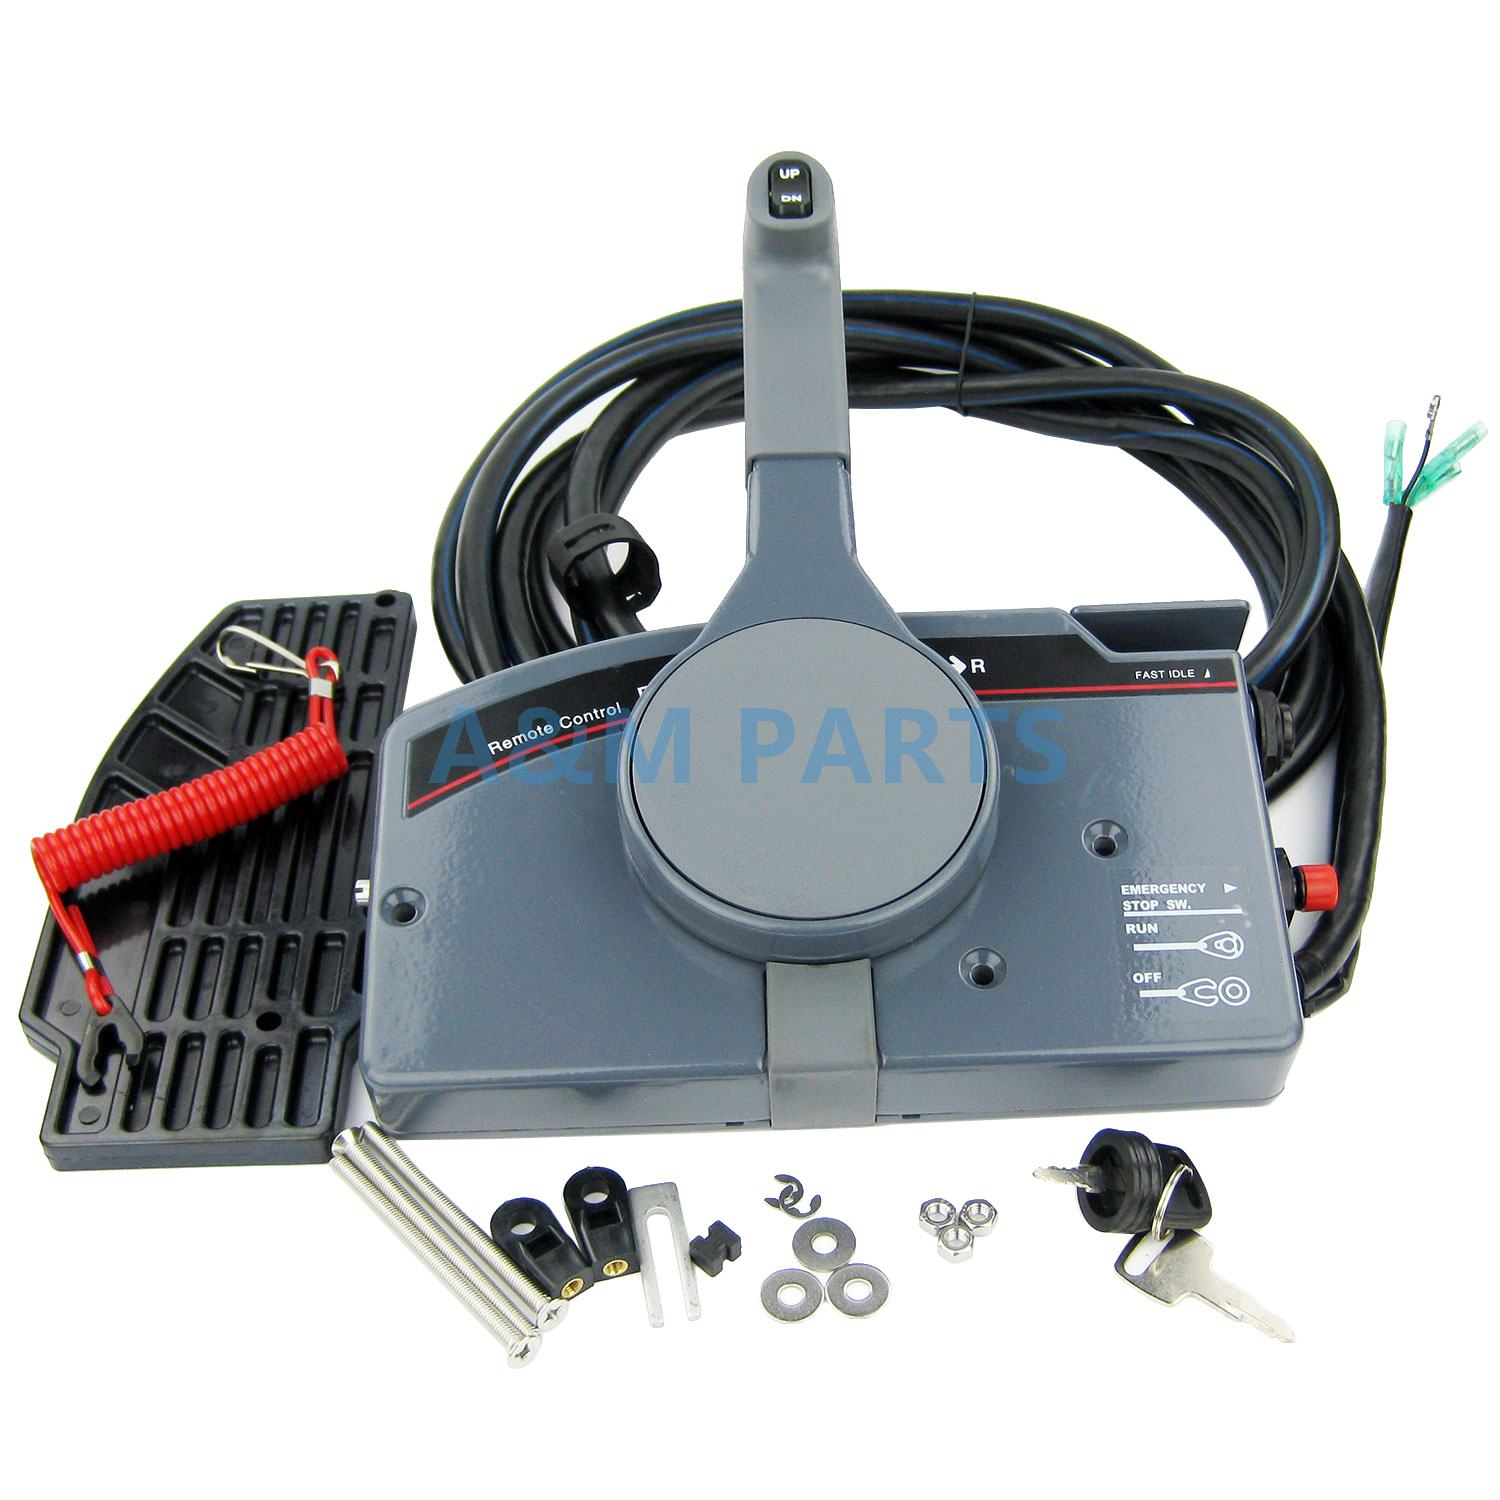 US $186 75 25% OFF|Outboard Remote Control Box for Yamaha Boat Engine Right  Side Mount With 10 Pin Cable PULL Throttle-in Marine Hardware from